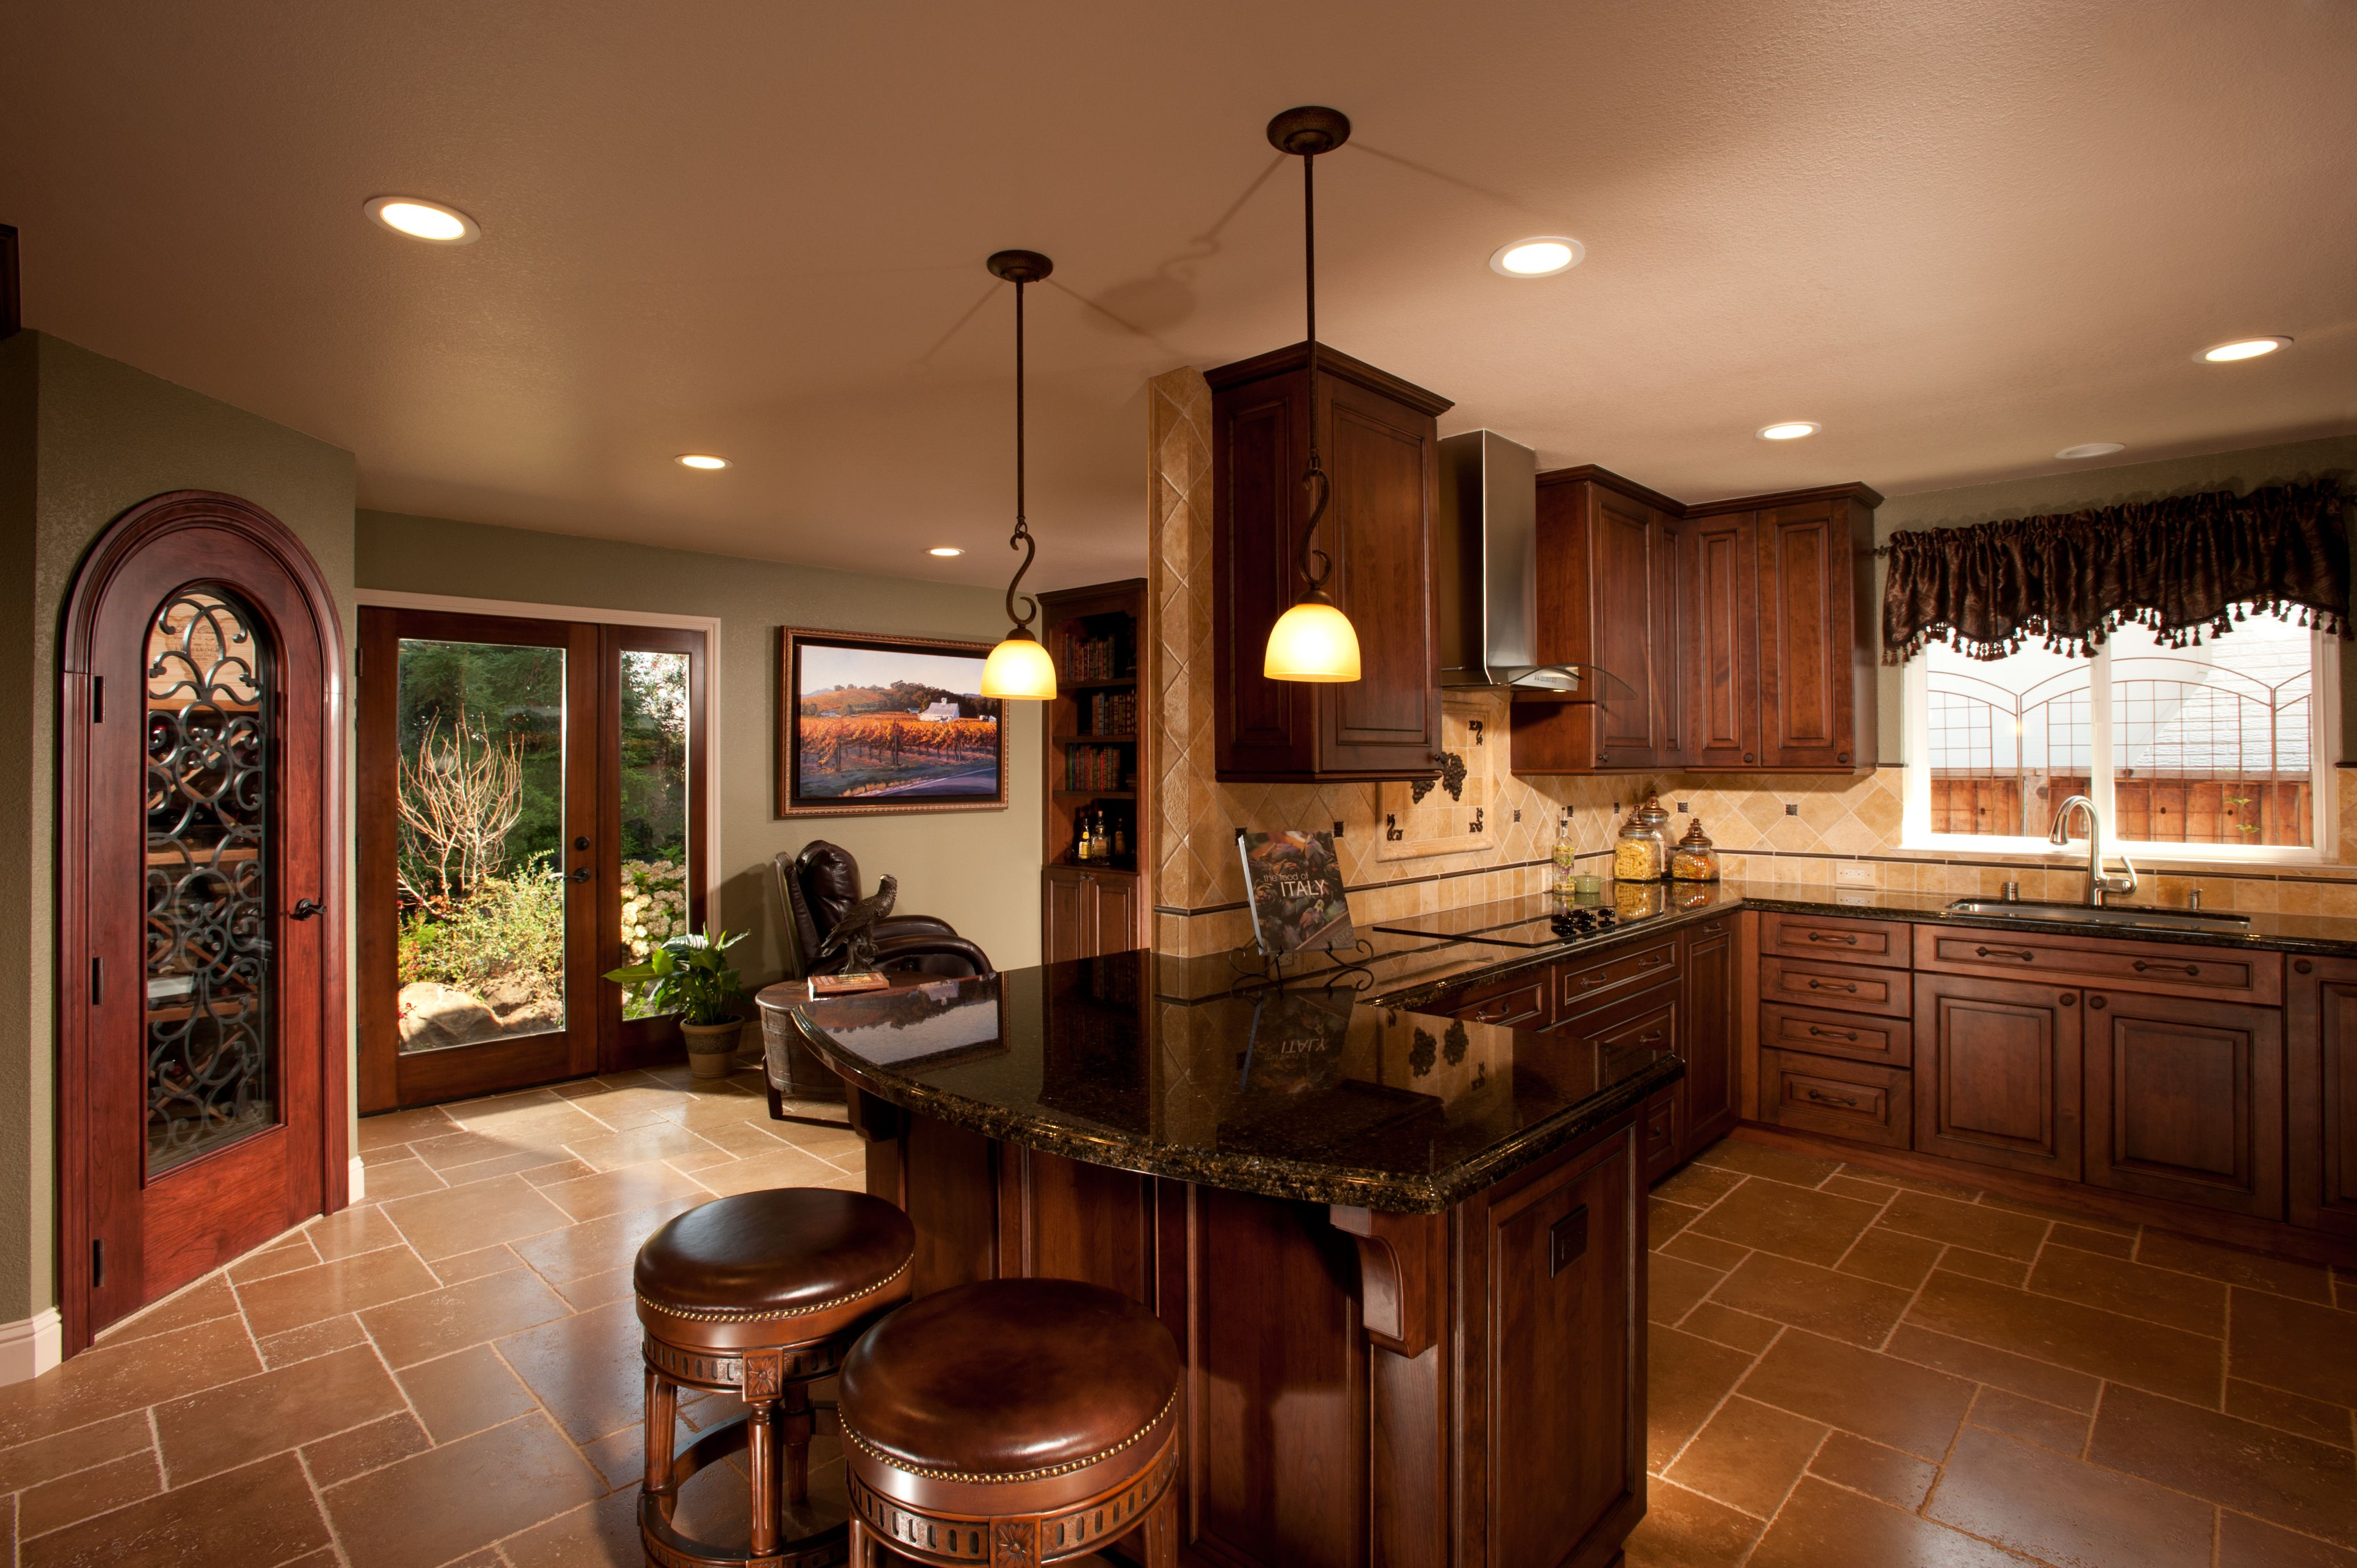 Dark Wood Country Kitchen tuscany inspired kitchen with california flavor. cabinets: dura